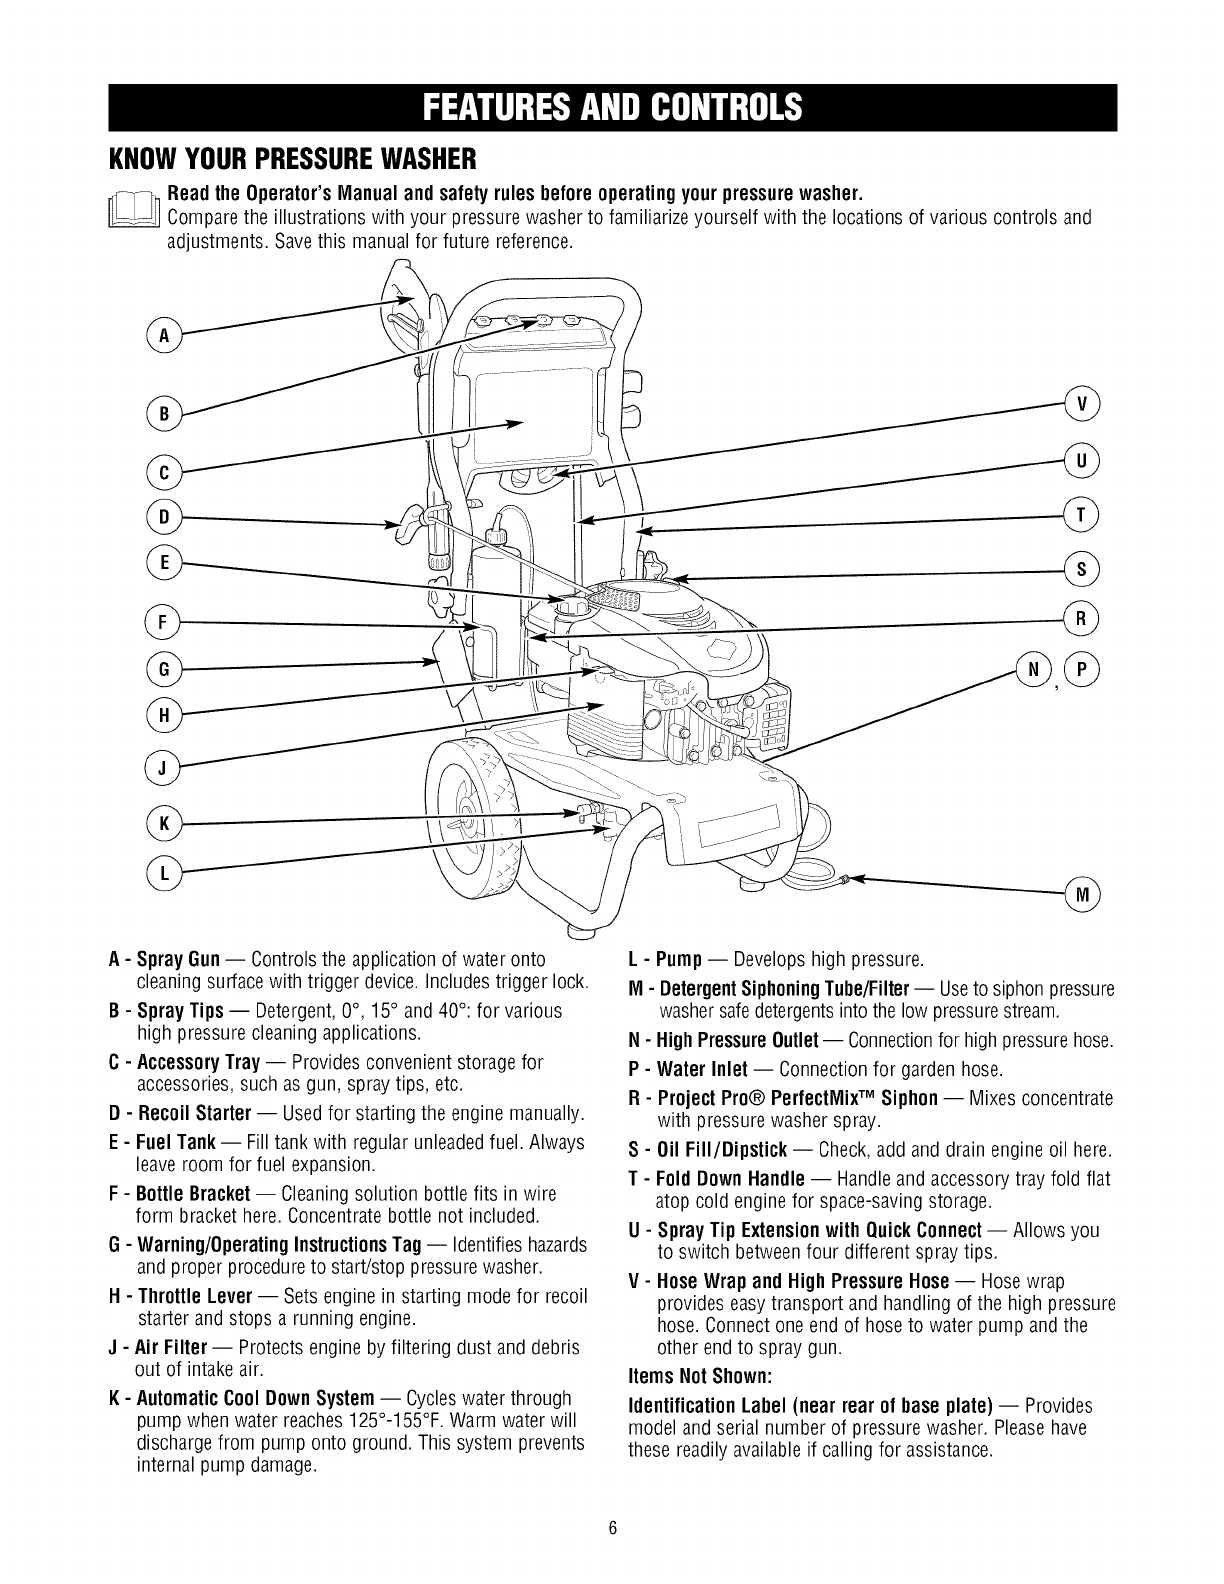 Craftsman 580752192 User Manual PRESSURE WASHER Manuals